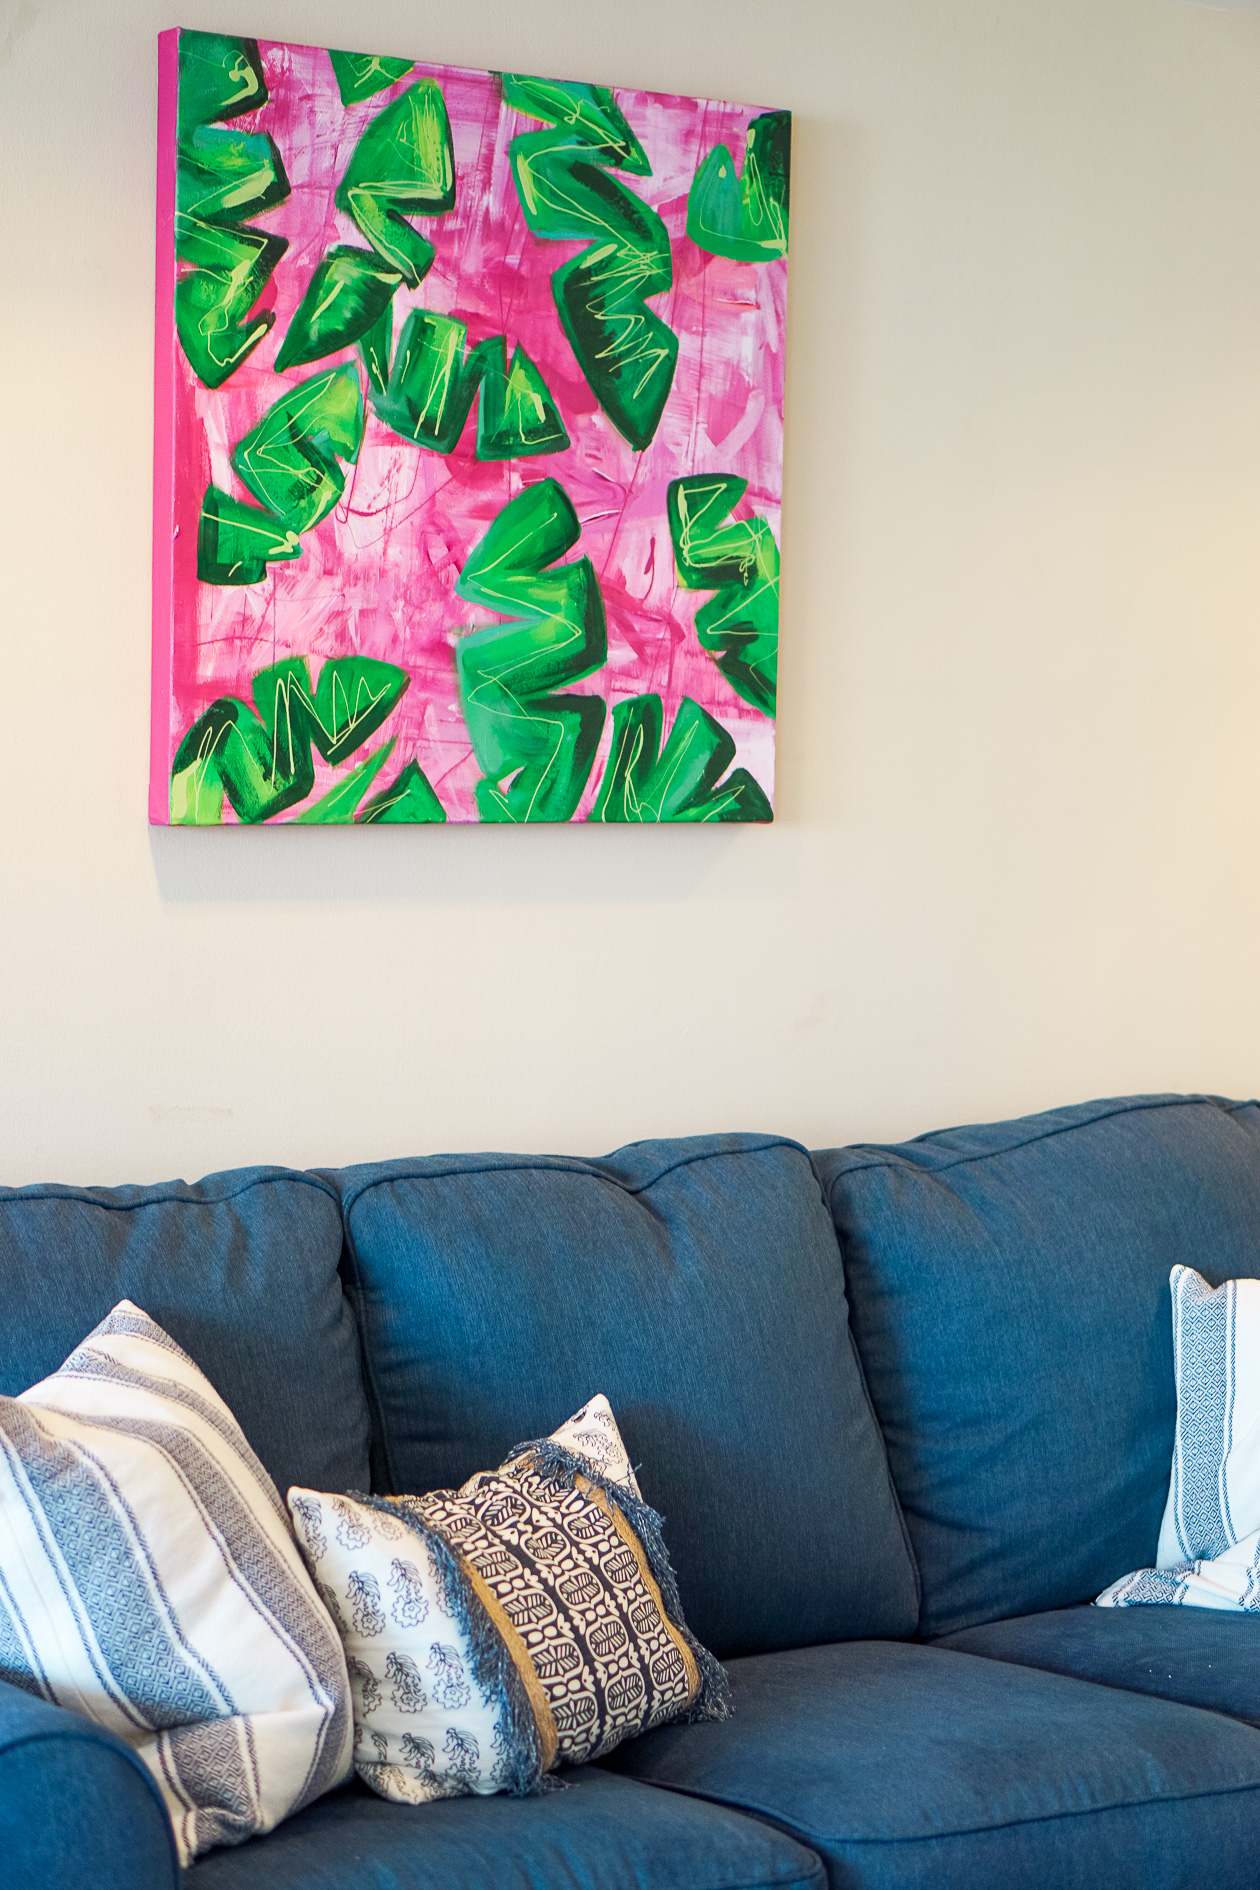 Colorful artwork for your apartment or home